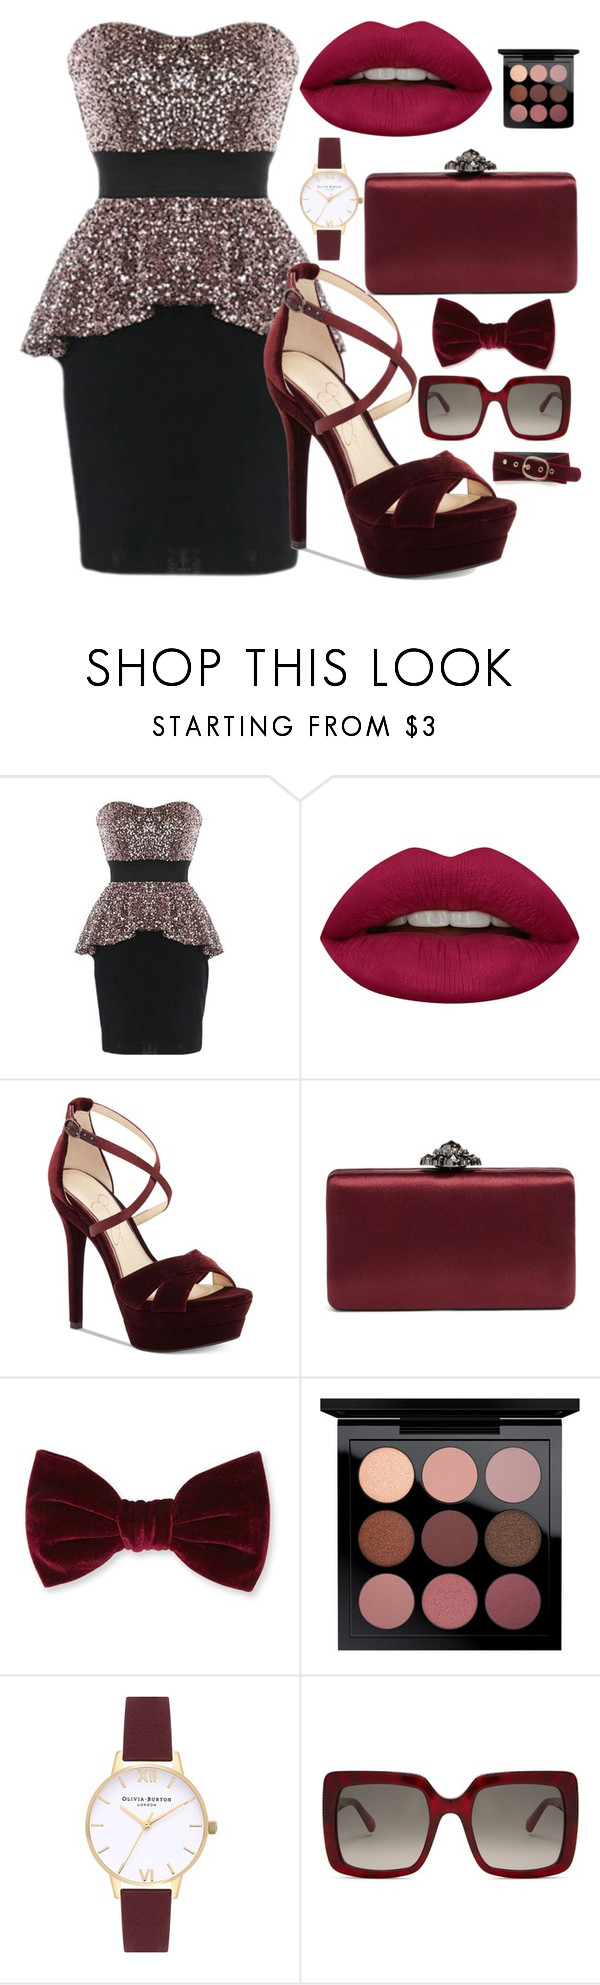 """""""Focus"""" by scheylly ❤ liked on Polyvore featuring Huda Beauty, Jessica Simpson, Nordstrom, Forever 21, MAC Cosmetics, Topshop, STELLA McCARTNEY and Ann Taylor"""